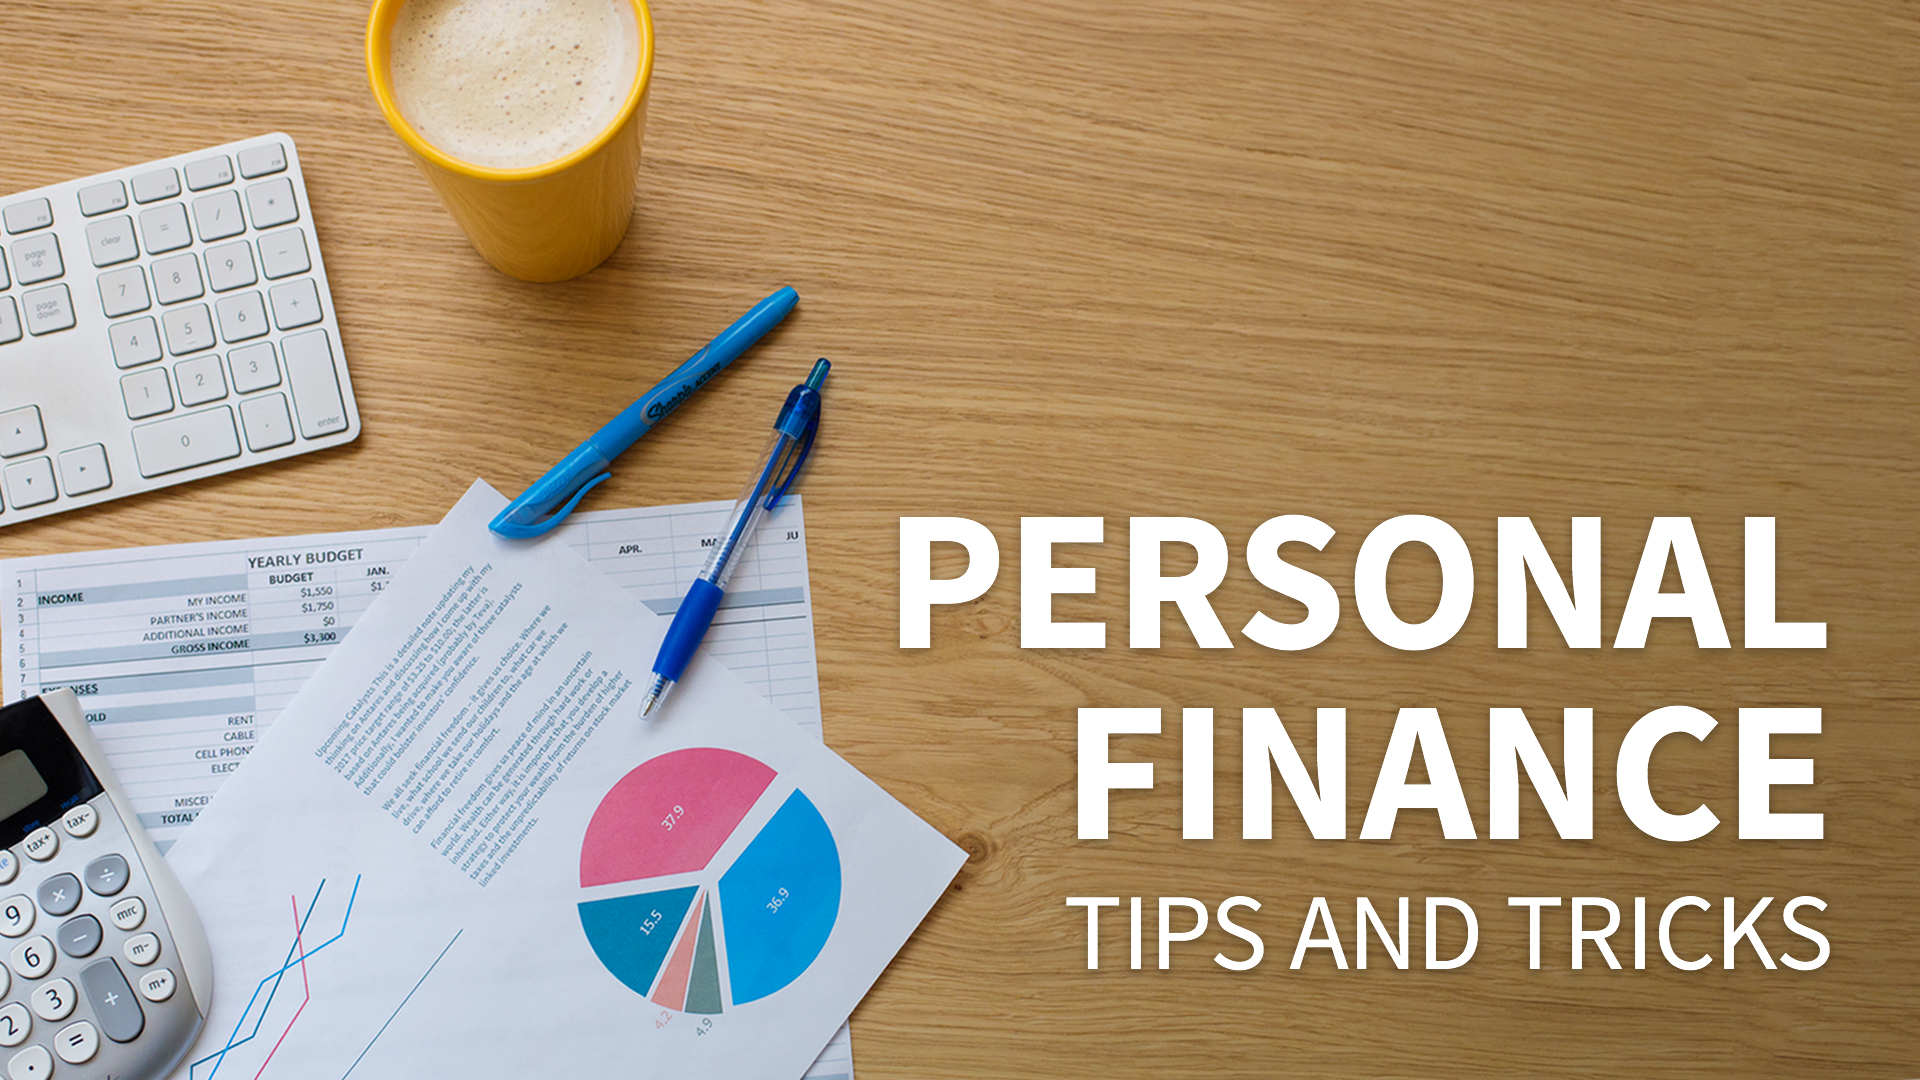 Personal Finance Tips and Tricks